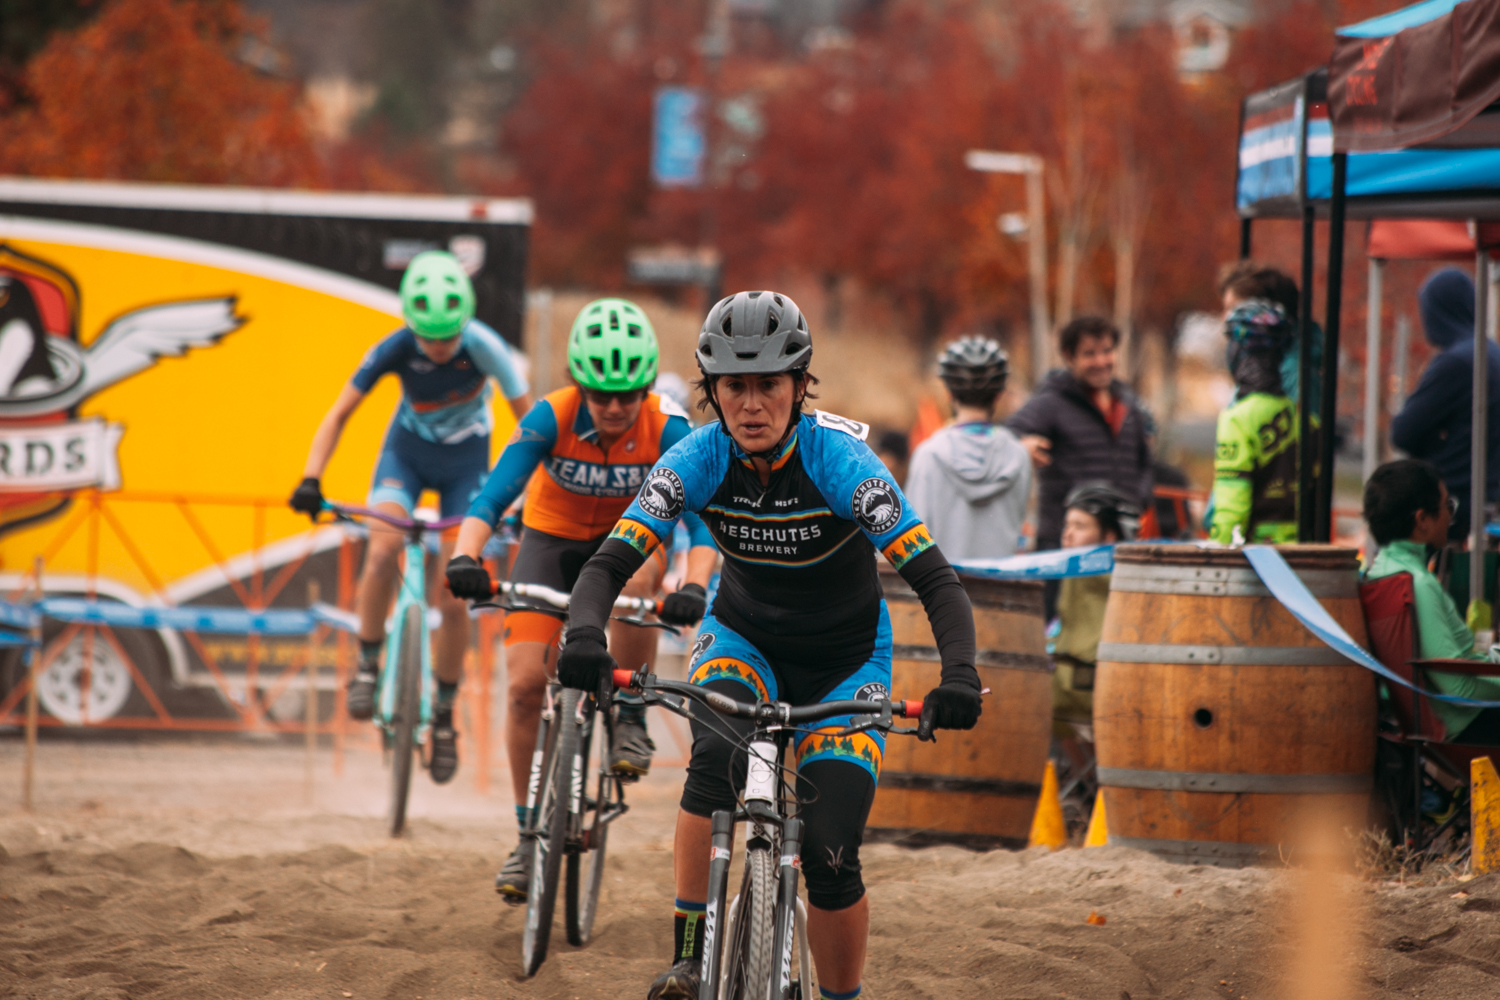 Cyclocross18_CCCX-Bend-Day1-33-fransencomesalive-2.jpg